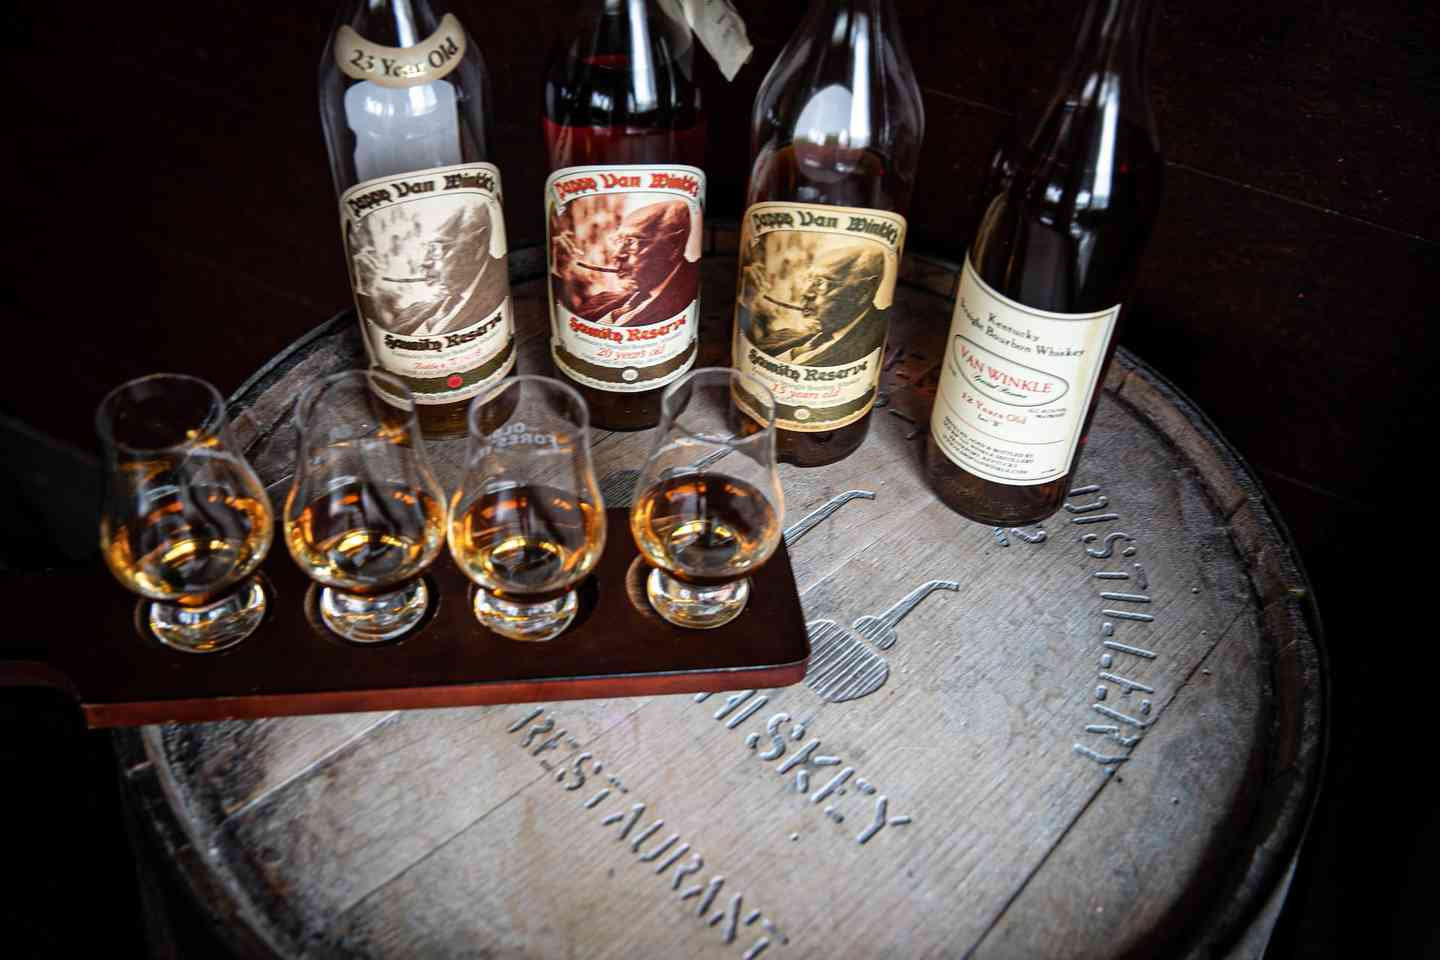 Pappy van Winkle bourbon whiskey flight